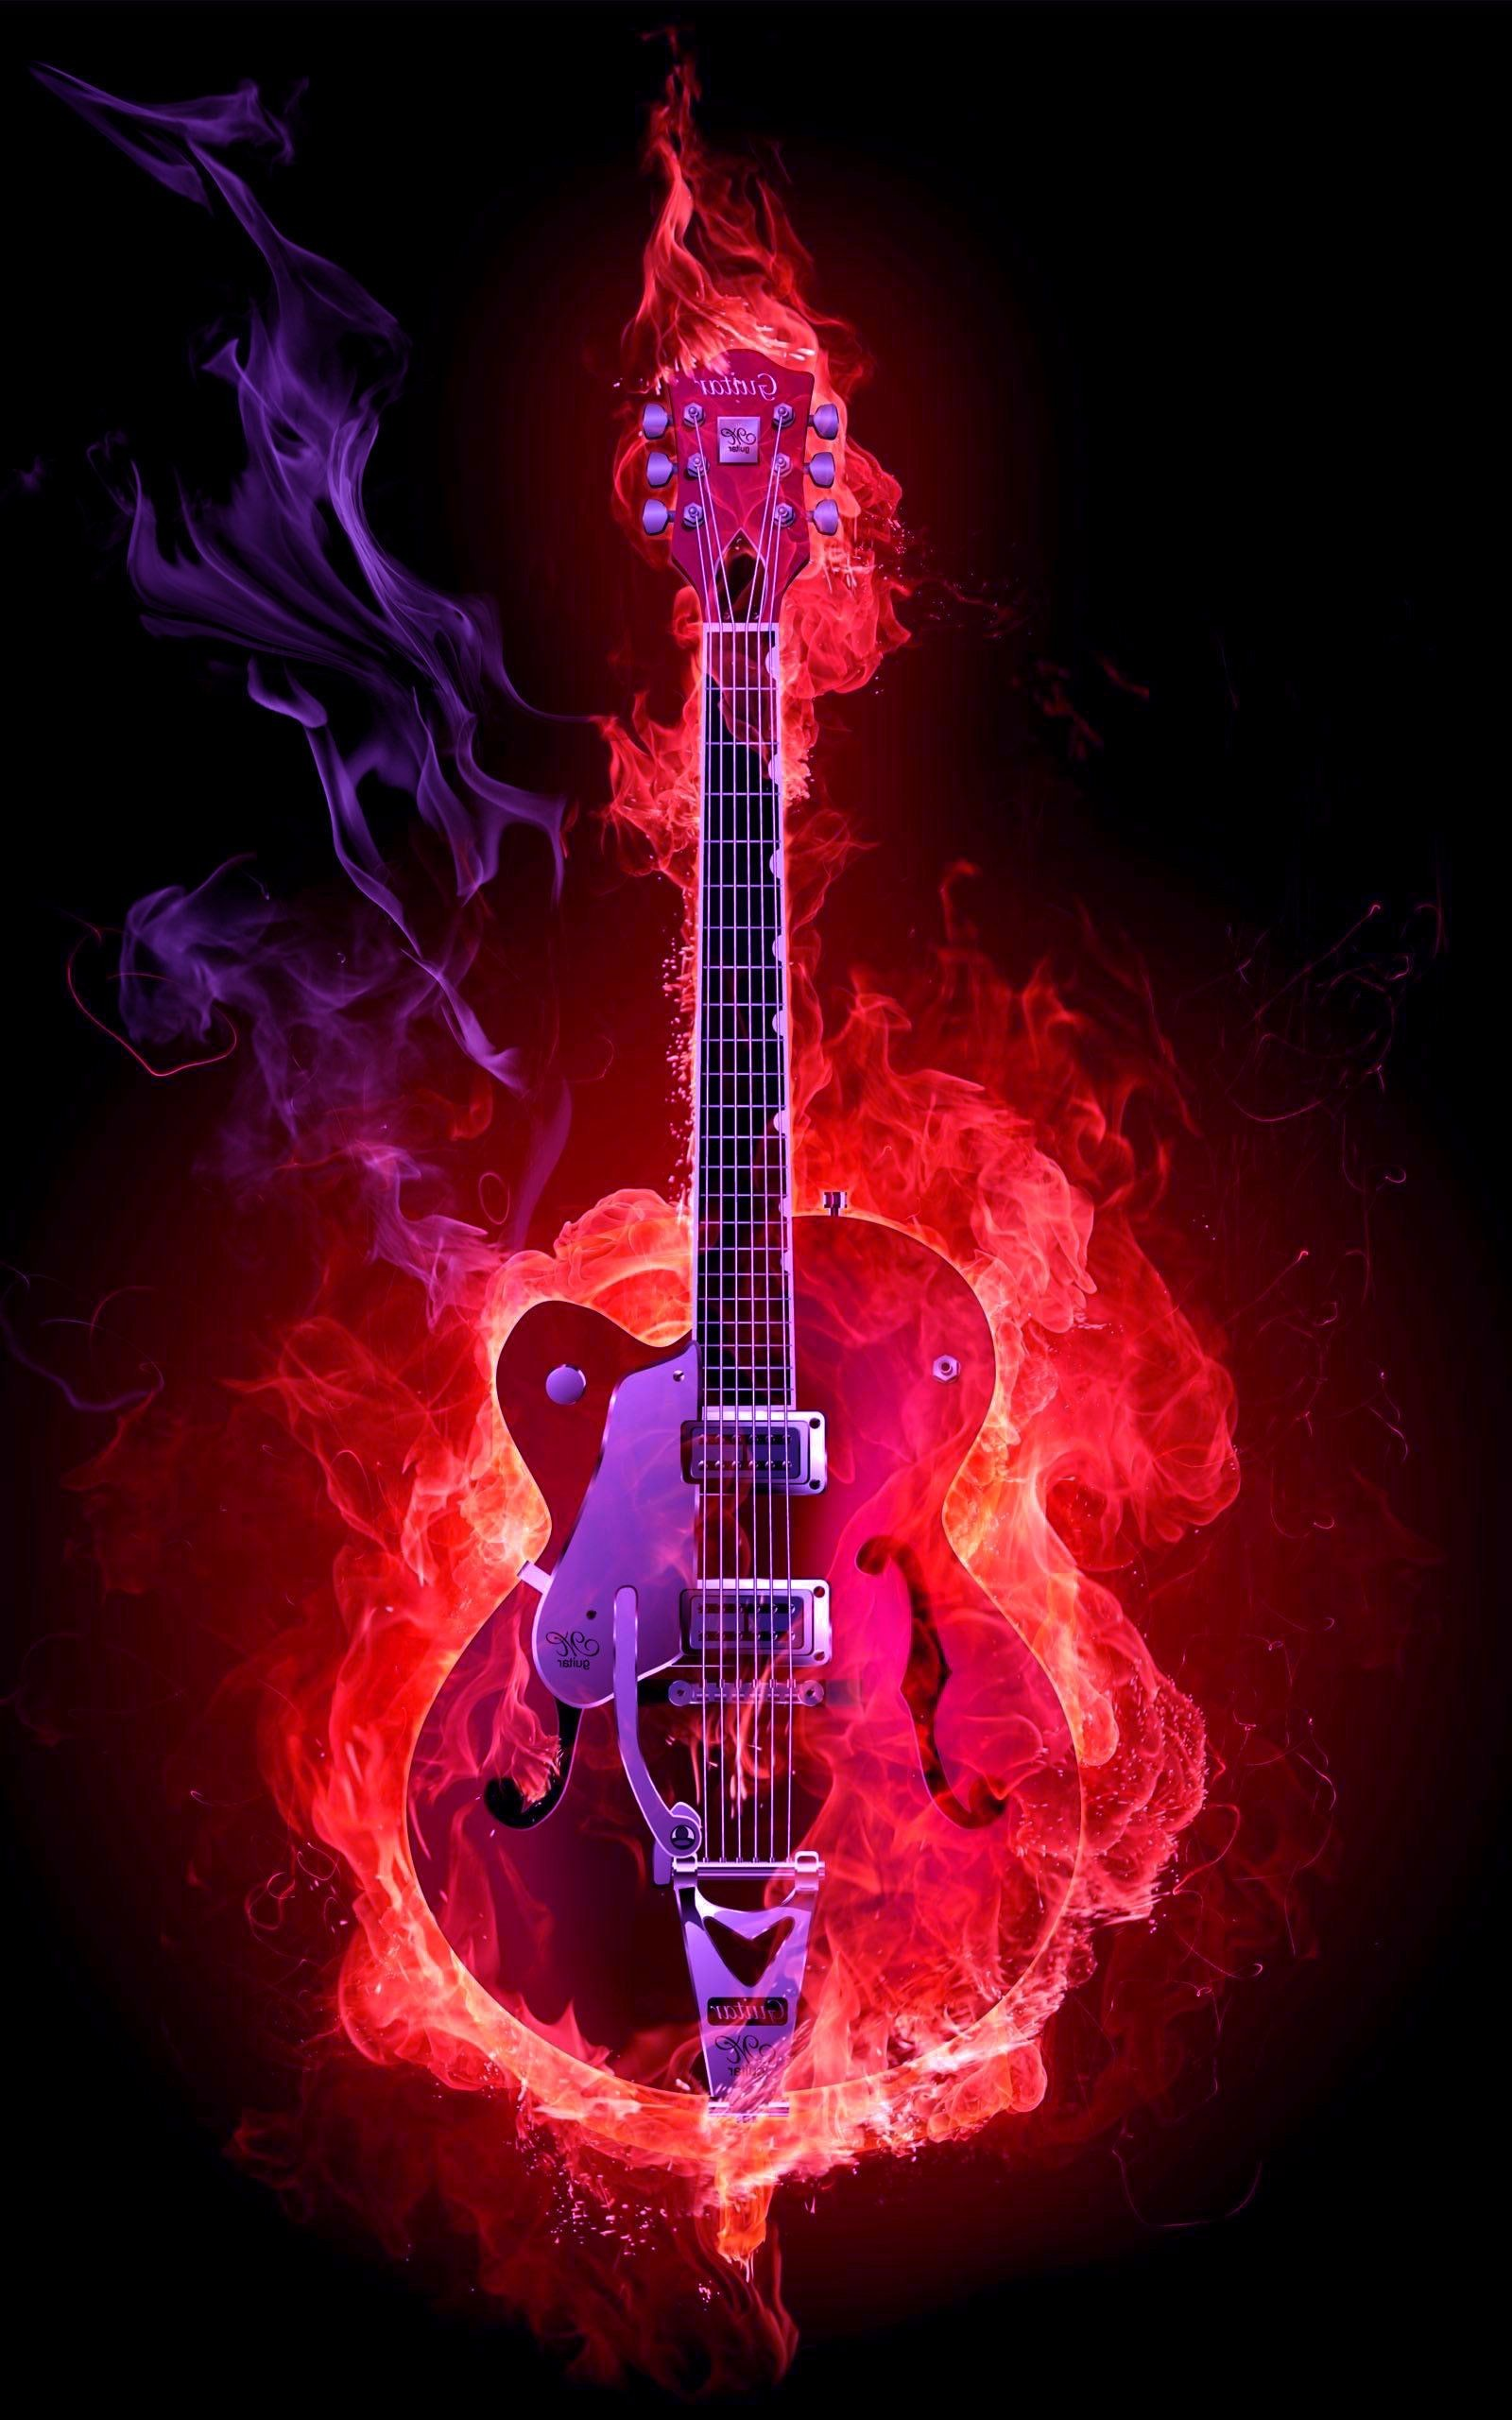 1600x2560 Flame Guitar HD Wallpaper 1600×2560 - High Definition Wallpaper | Daily  Screens id-3331